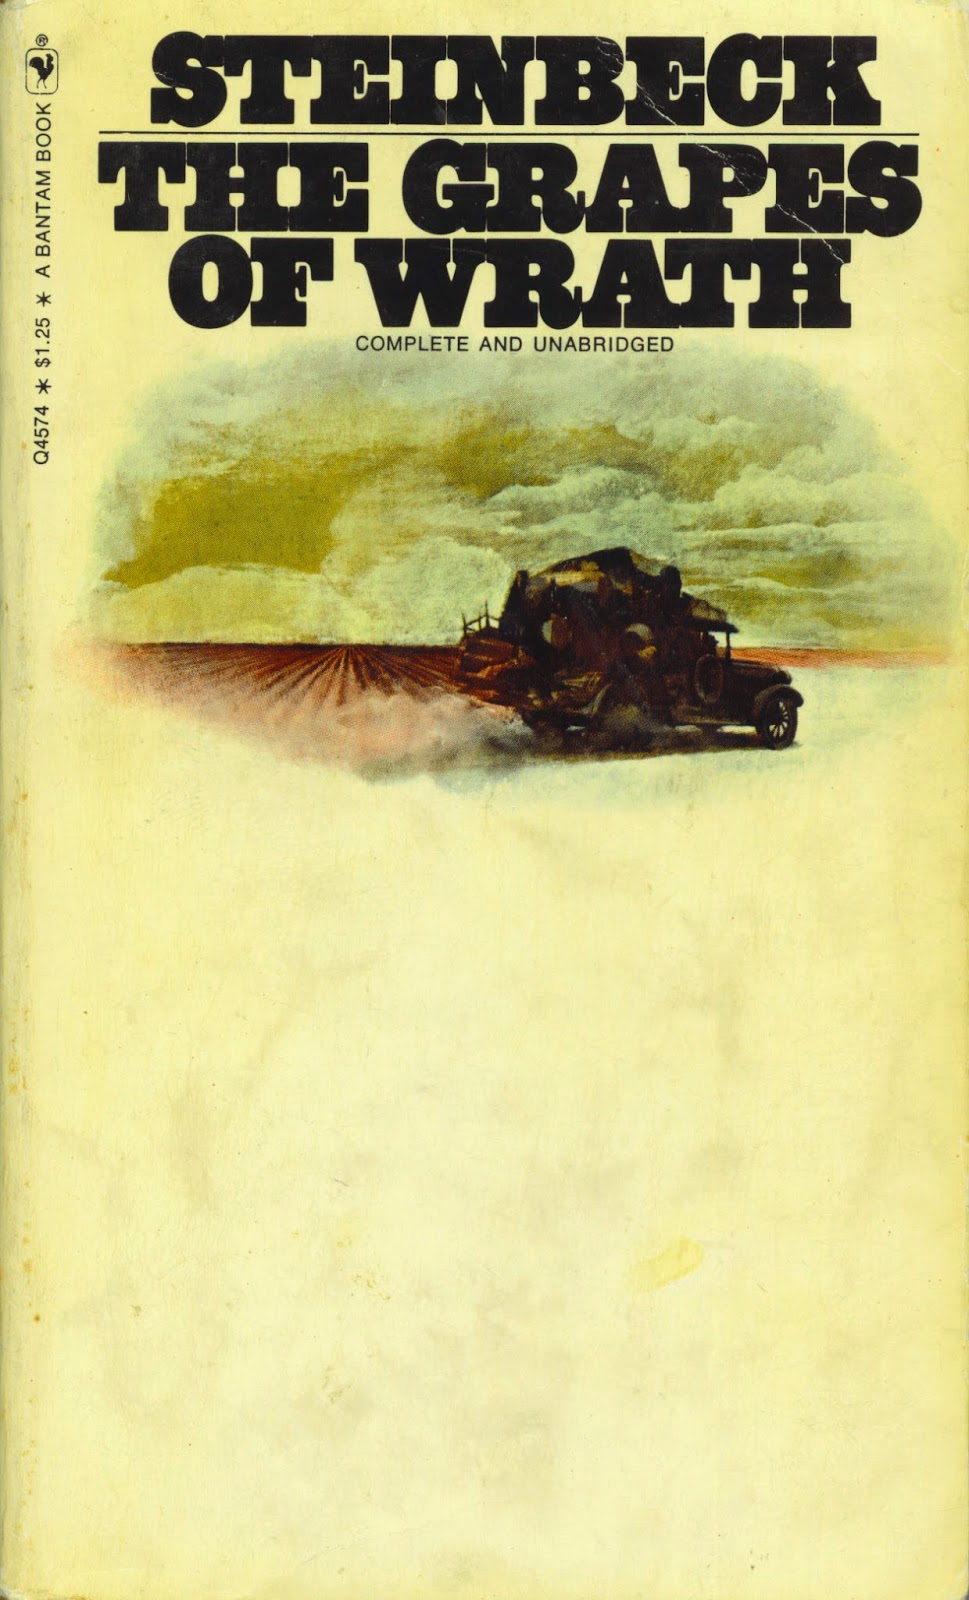 an analysis of leaders in the grapes of wrath by john steinbeck